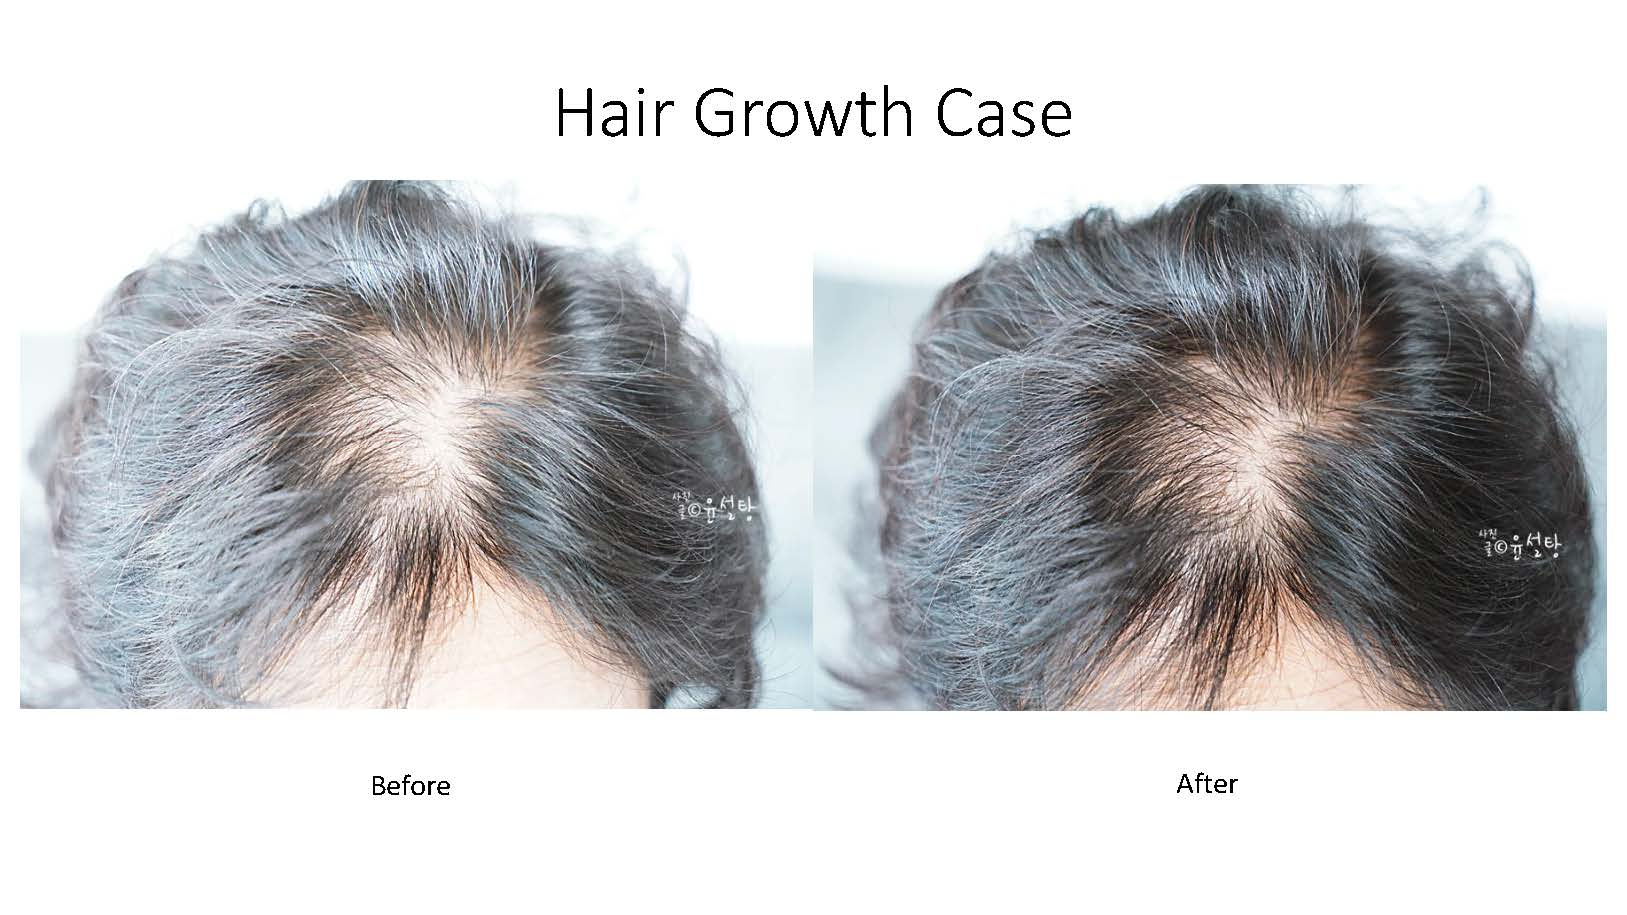 Hair growth examples_Page_1.jpg